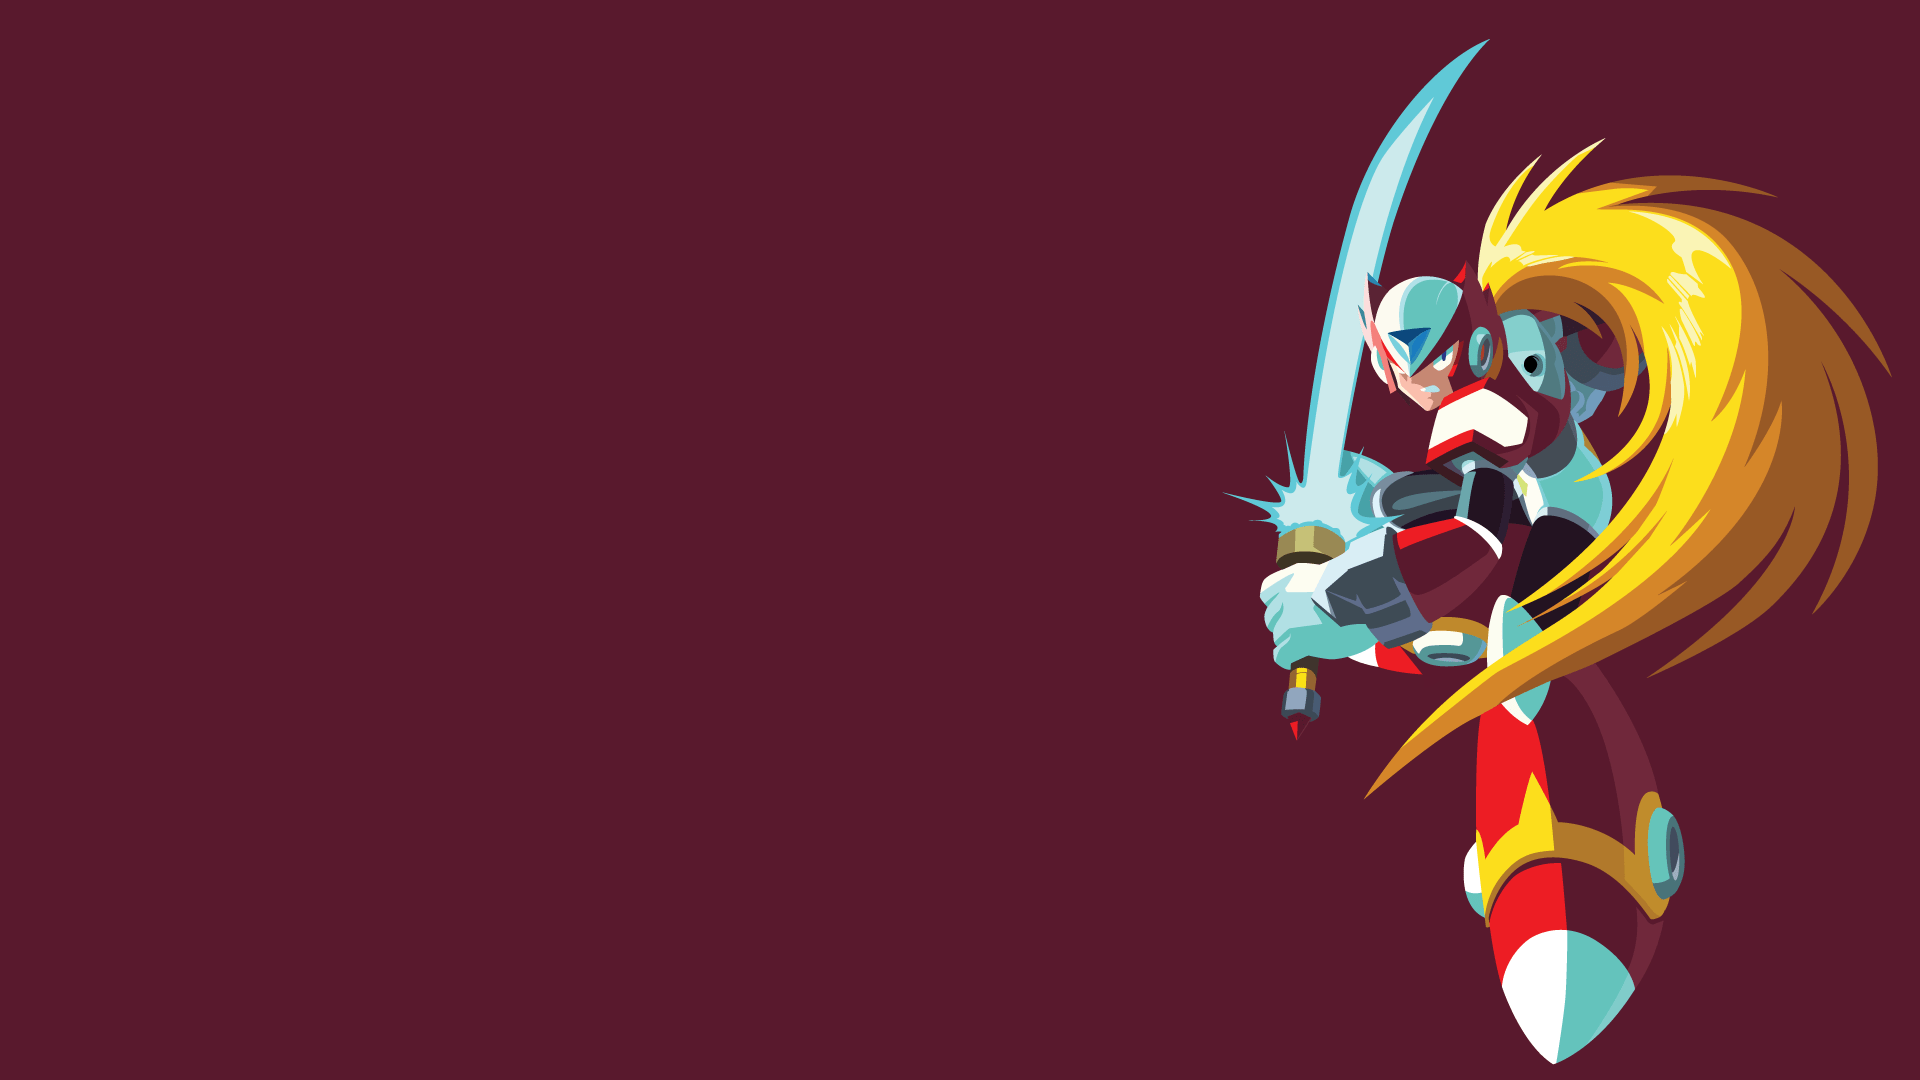 Mega Man Iphone Wallpaper Mega Man Full Hd Wallpaper And Background Image